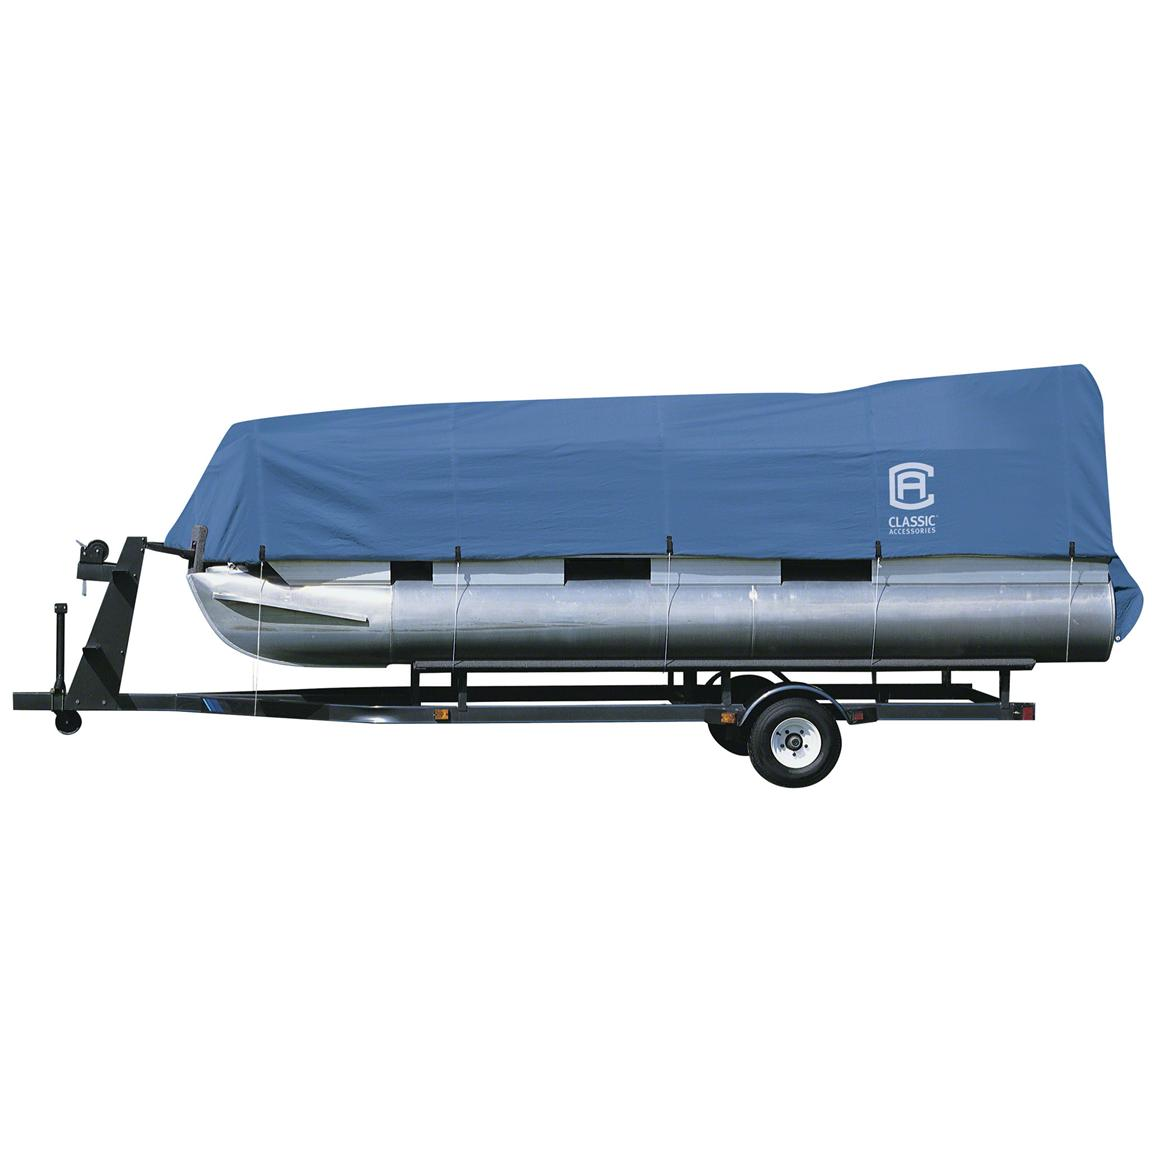 Classic Accessories® Stellex™ Pontoon Boat Cover